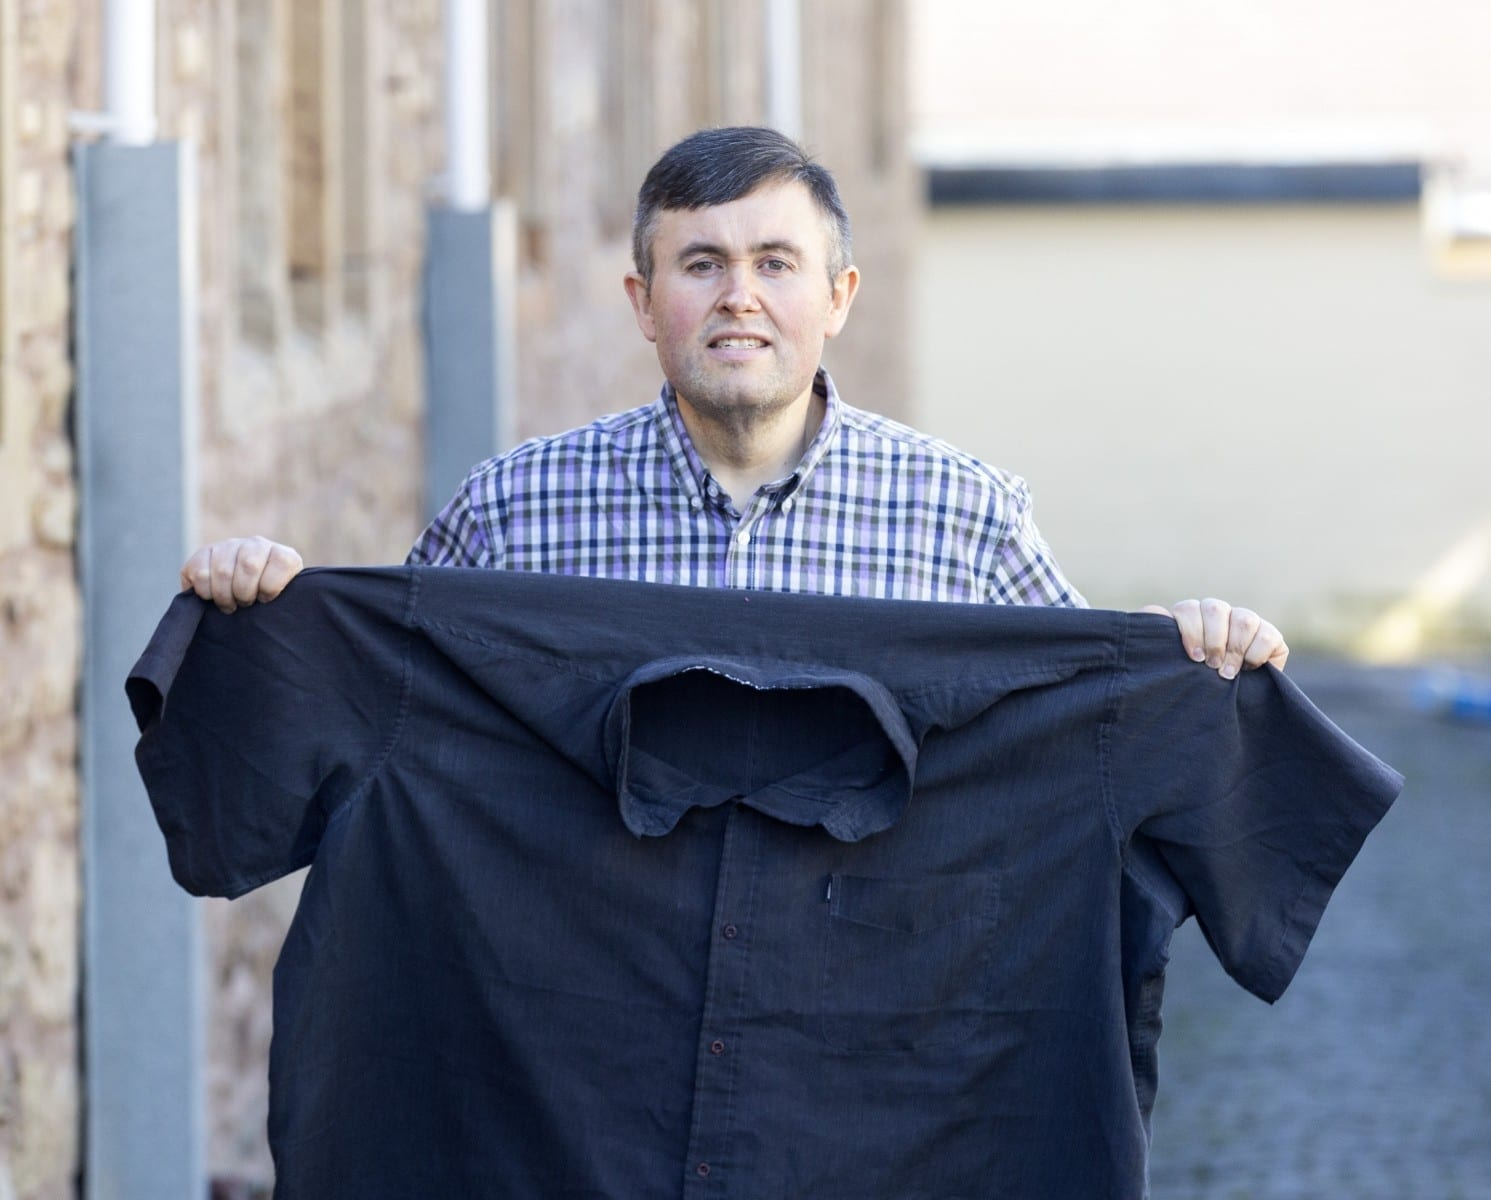 33st Super-Slimmer Is Half The Man He Used To Be After Losing A Staggering 17 Stone When Medics Told Him He Was Eating Himself To Death